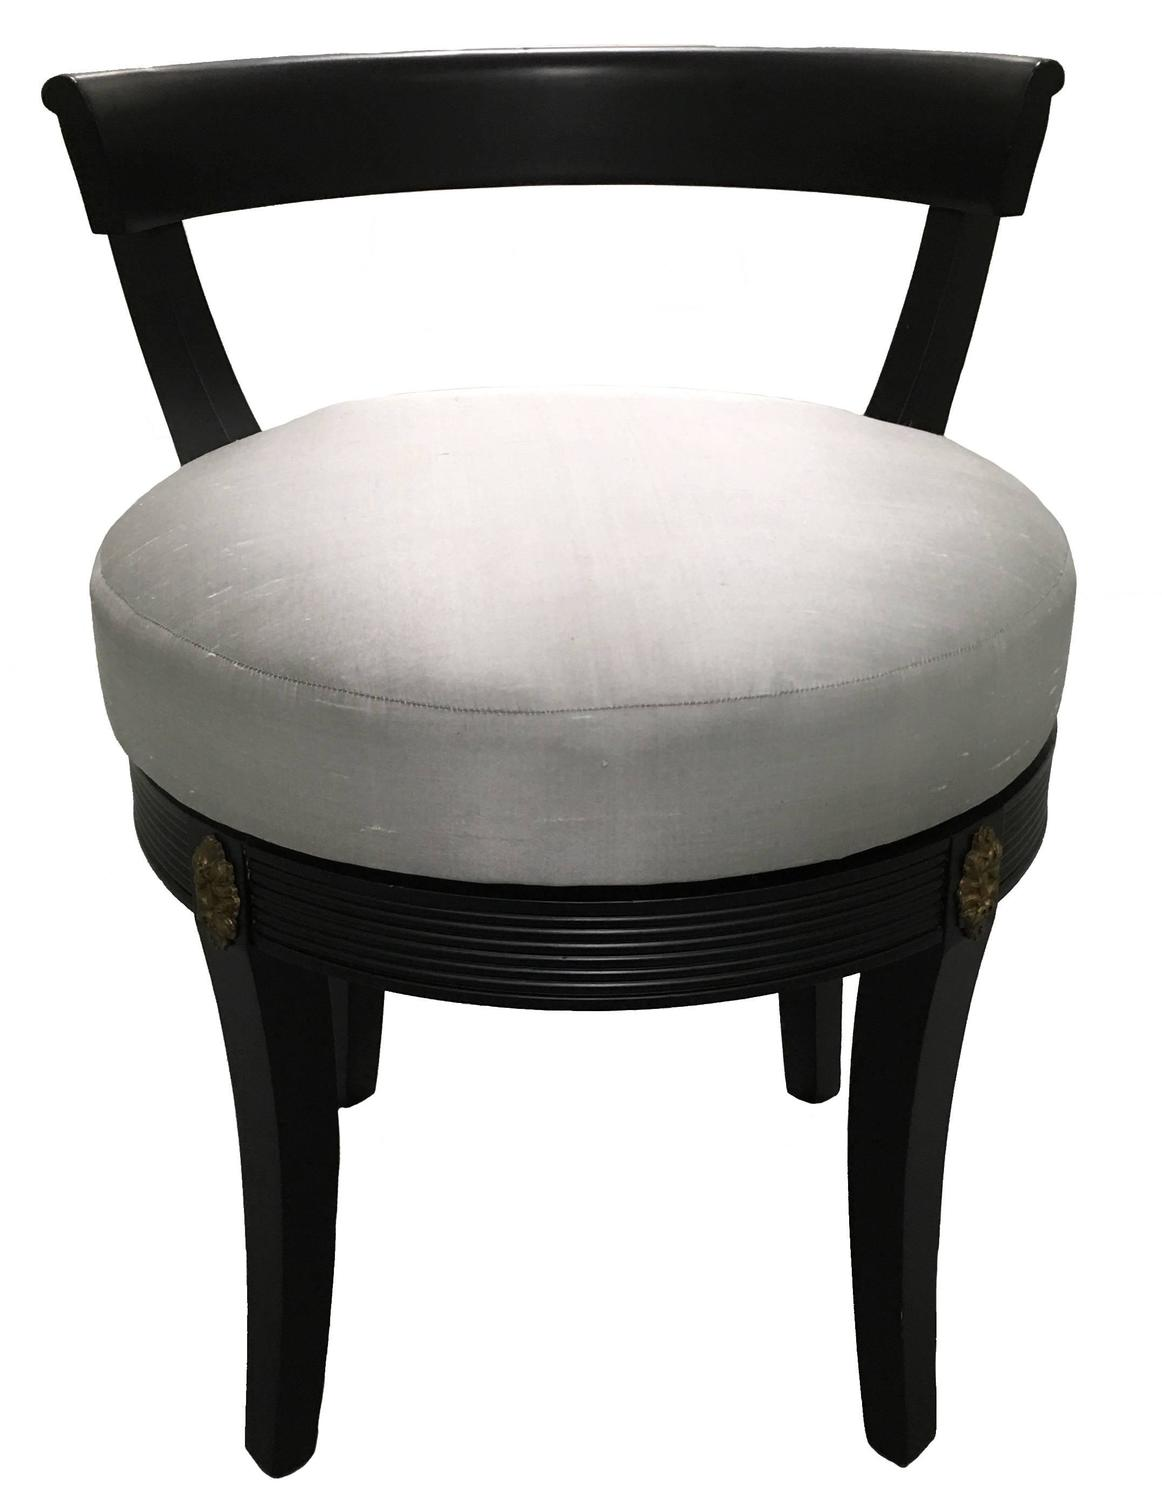 vanity chair with back inflatable lawn hollywood regency style black swivel stool at 1stdibs